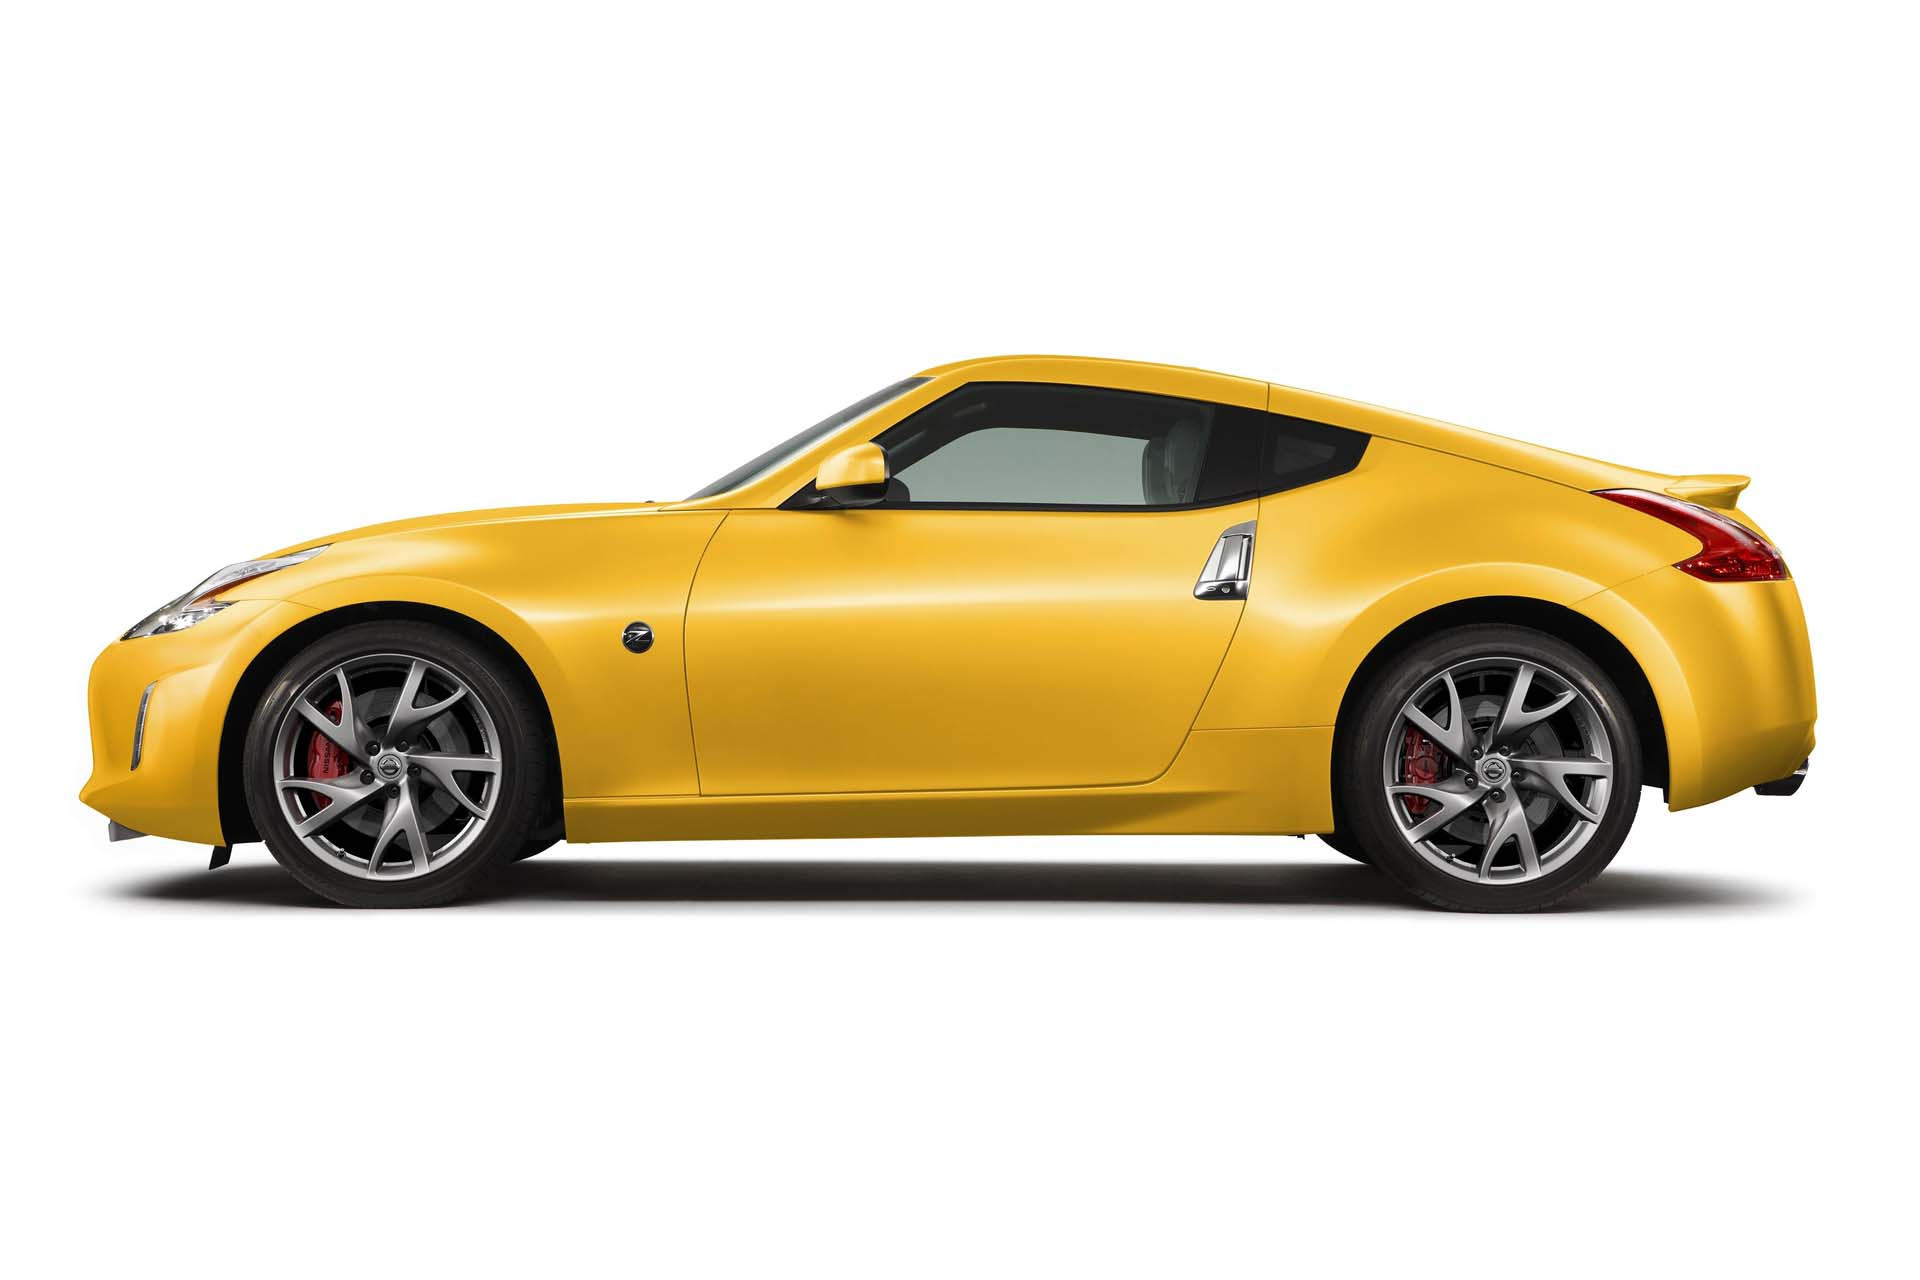 2017 Nissan 370Z Performance Review - The Car Connection